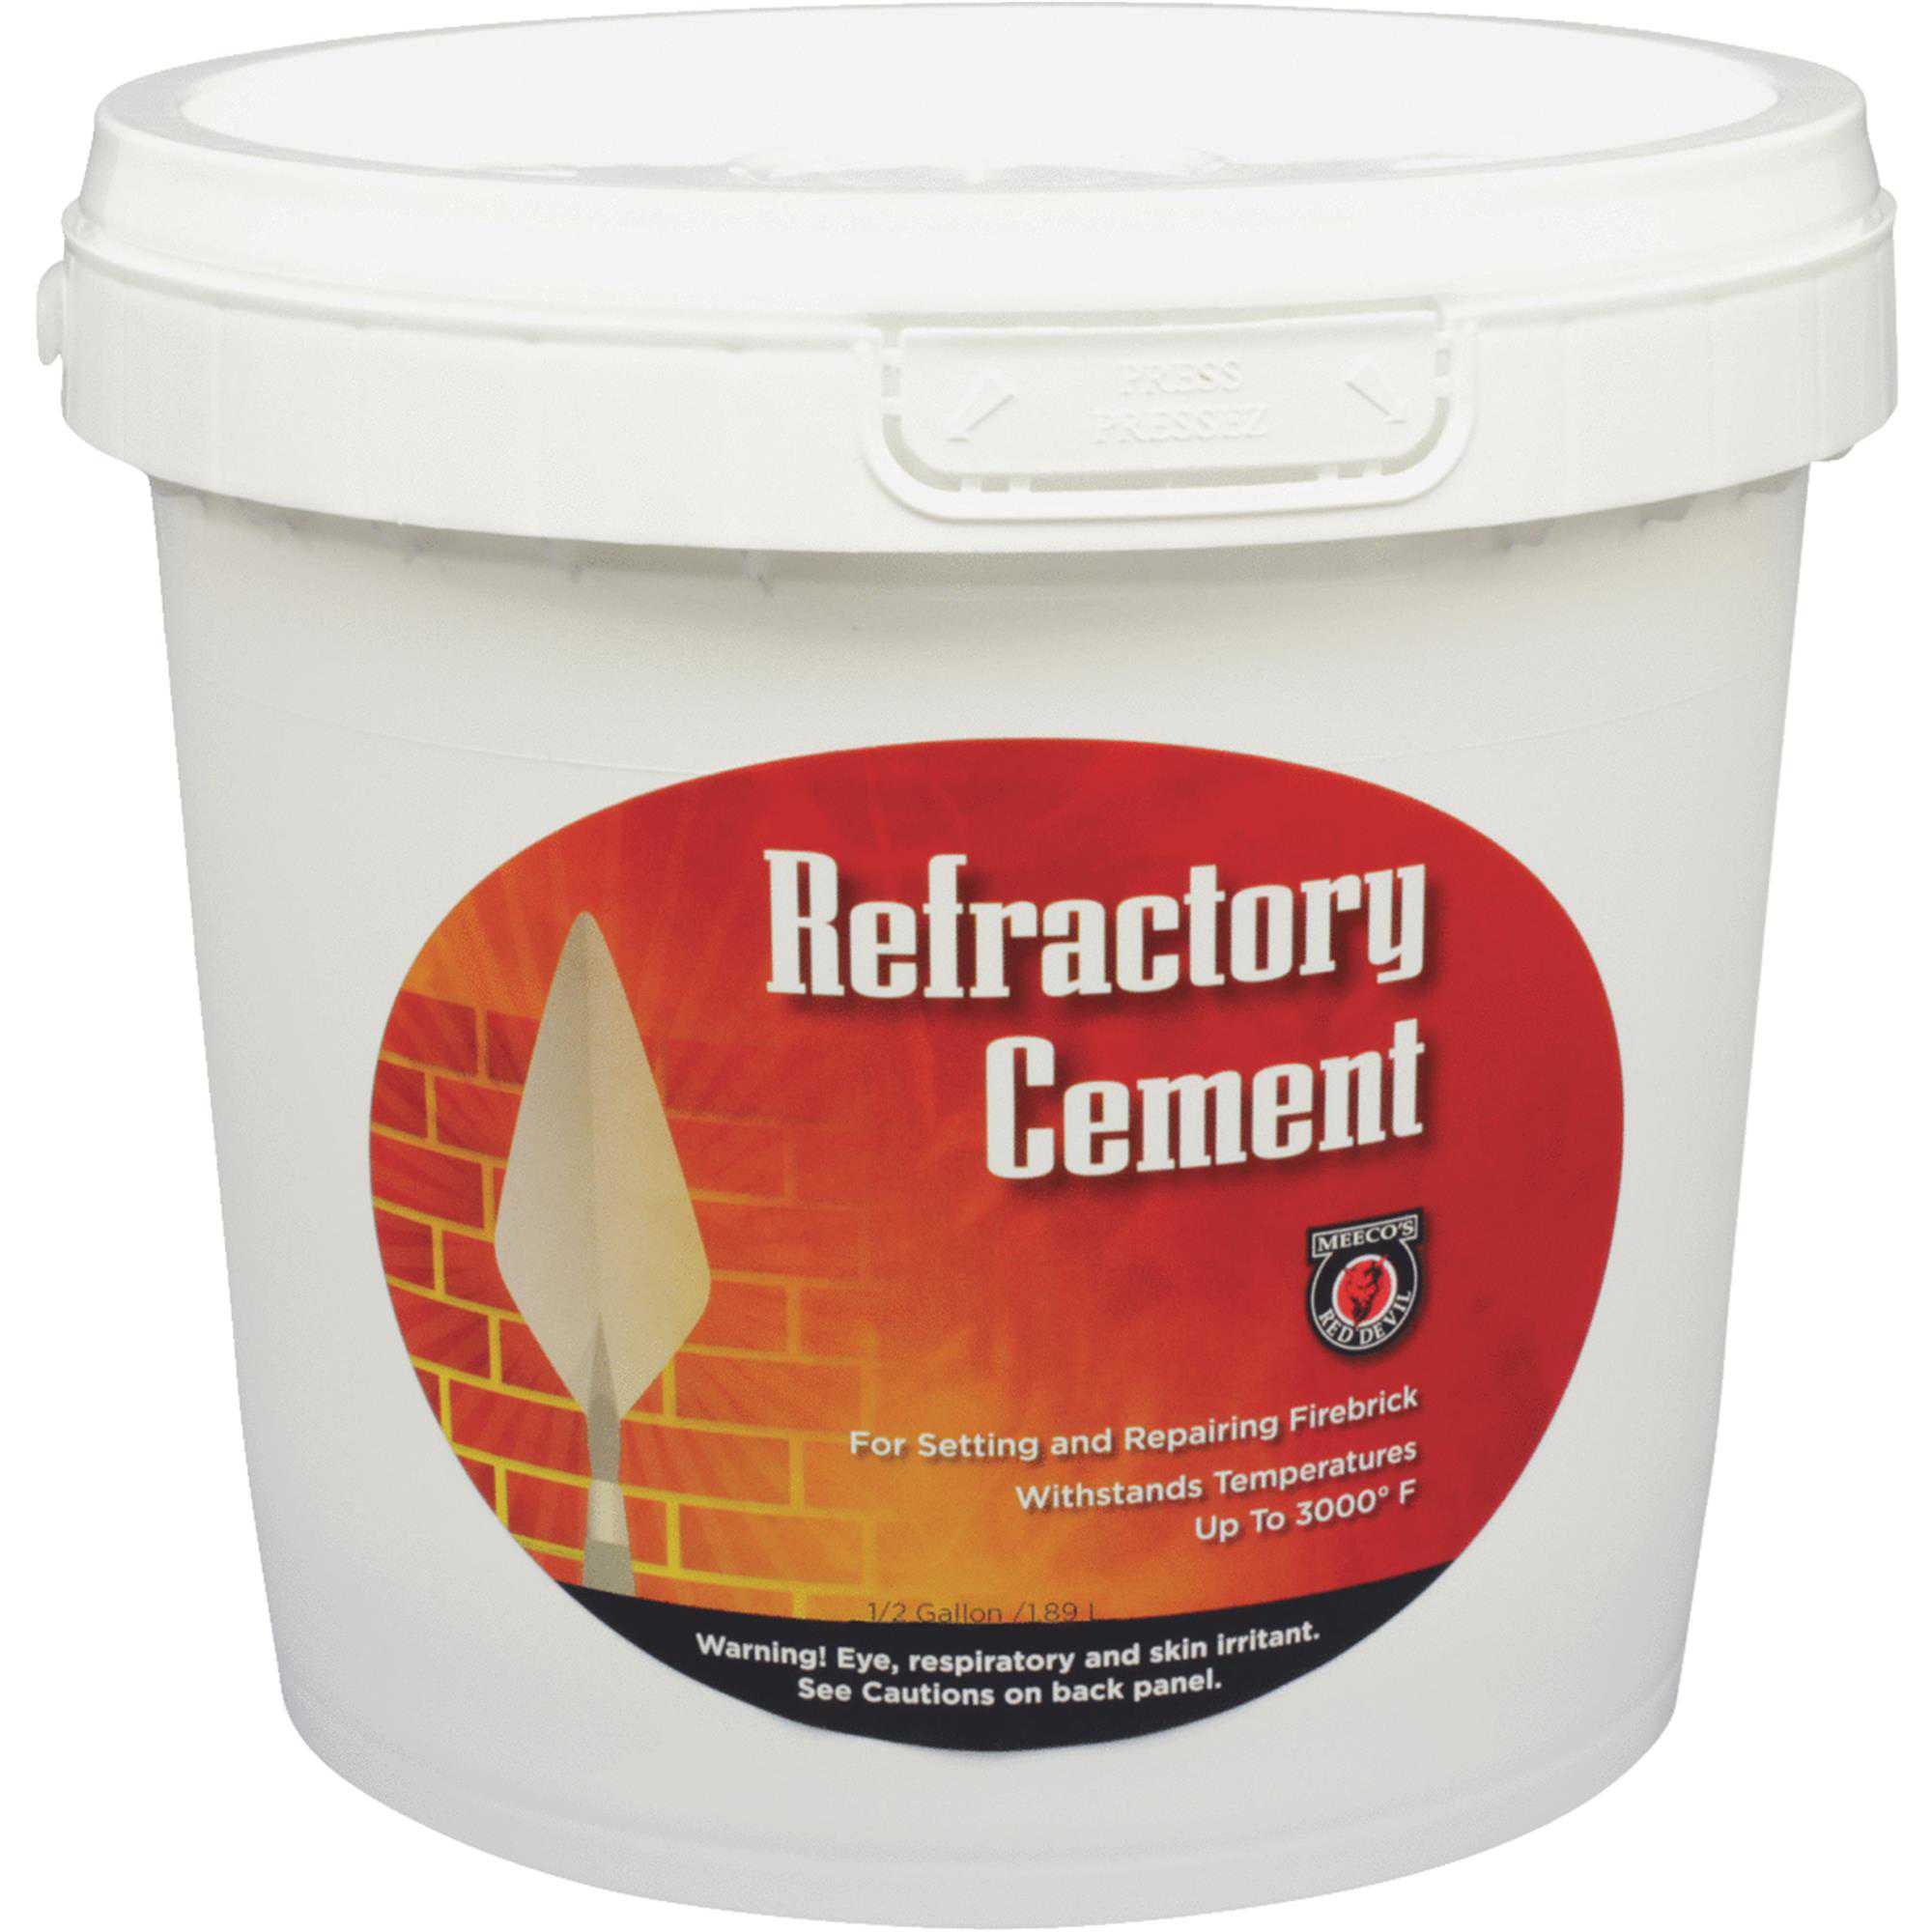 Meeco's Red Devil Refractory Furnace Cement